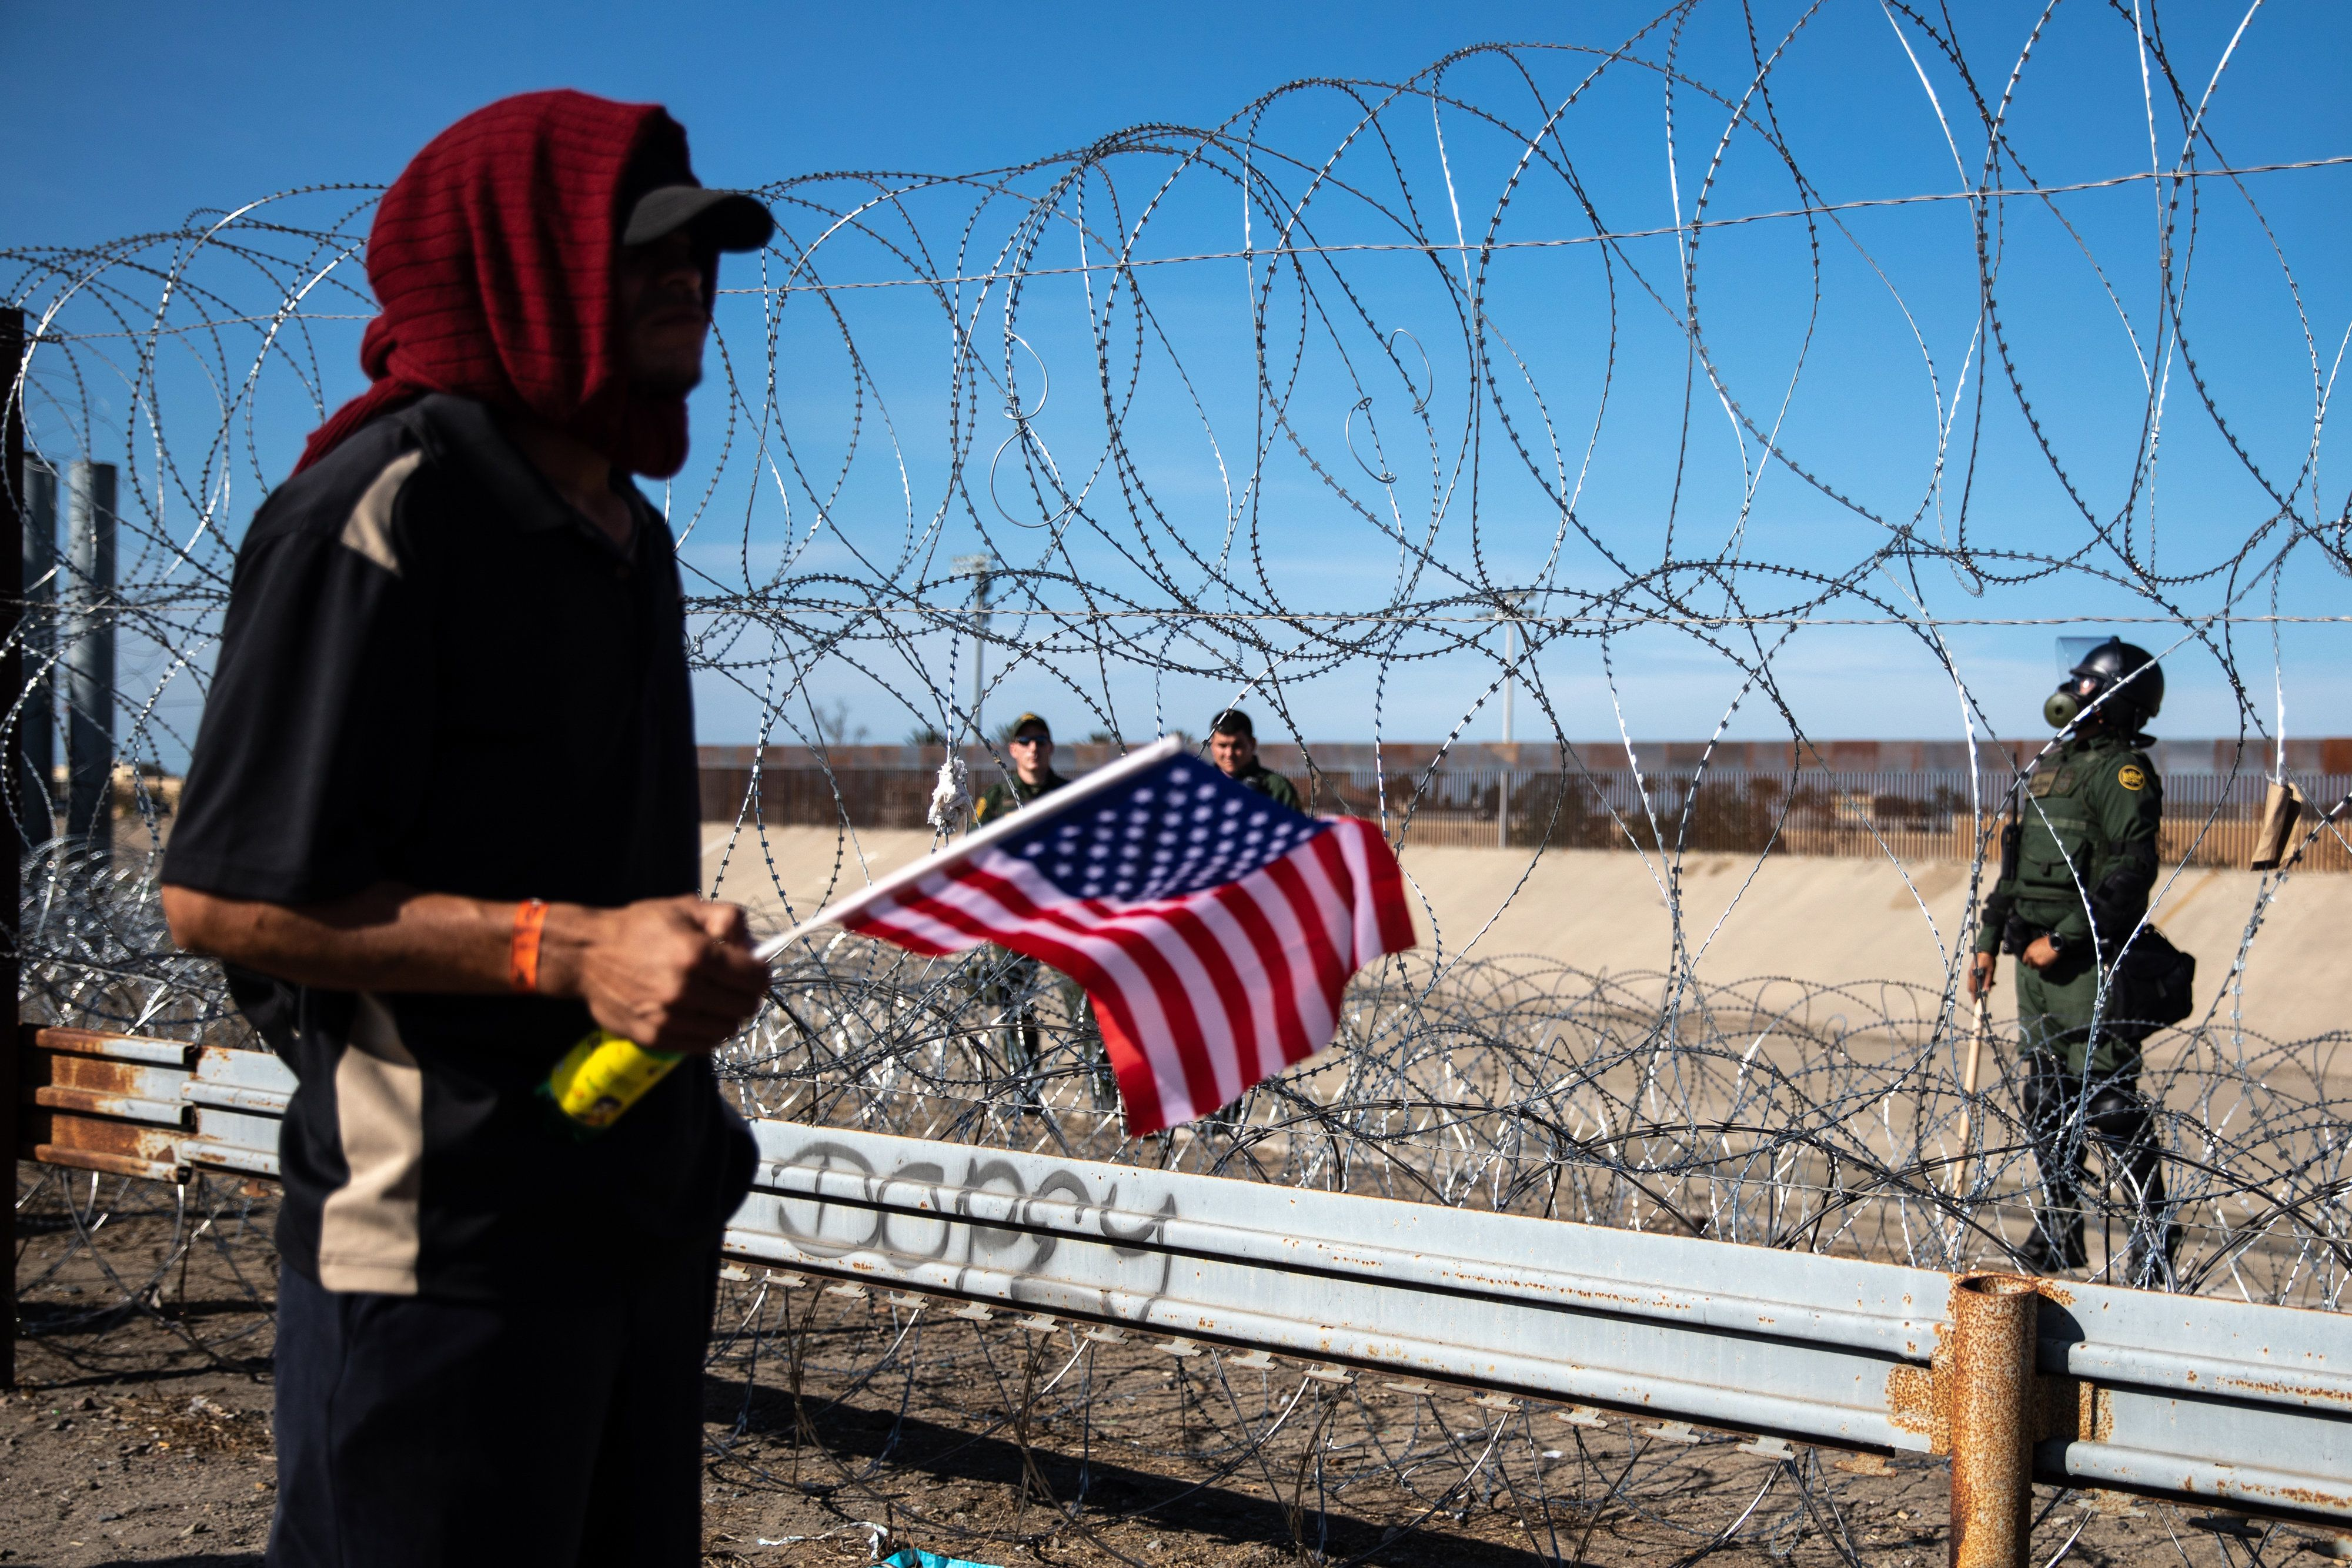 A Central American migrant holds an American flag near barbed wire border fence along the the US and Mexico border in Tijuana, Mexico, on Sunday, Nov. 25, 2018. U.S. border officials temporarily closed the San Ysidro port of entry between Tijuana and San Diego, one of the busiest border crossings in the world, 'to ensure public safety.' Photographer: Tomas Ayuso/Bloomberg via Getty Images